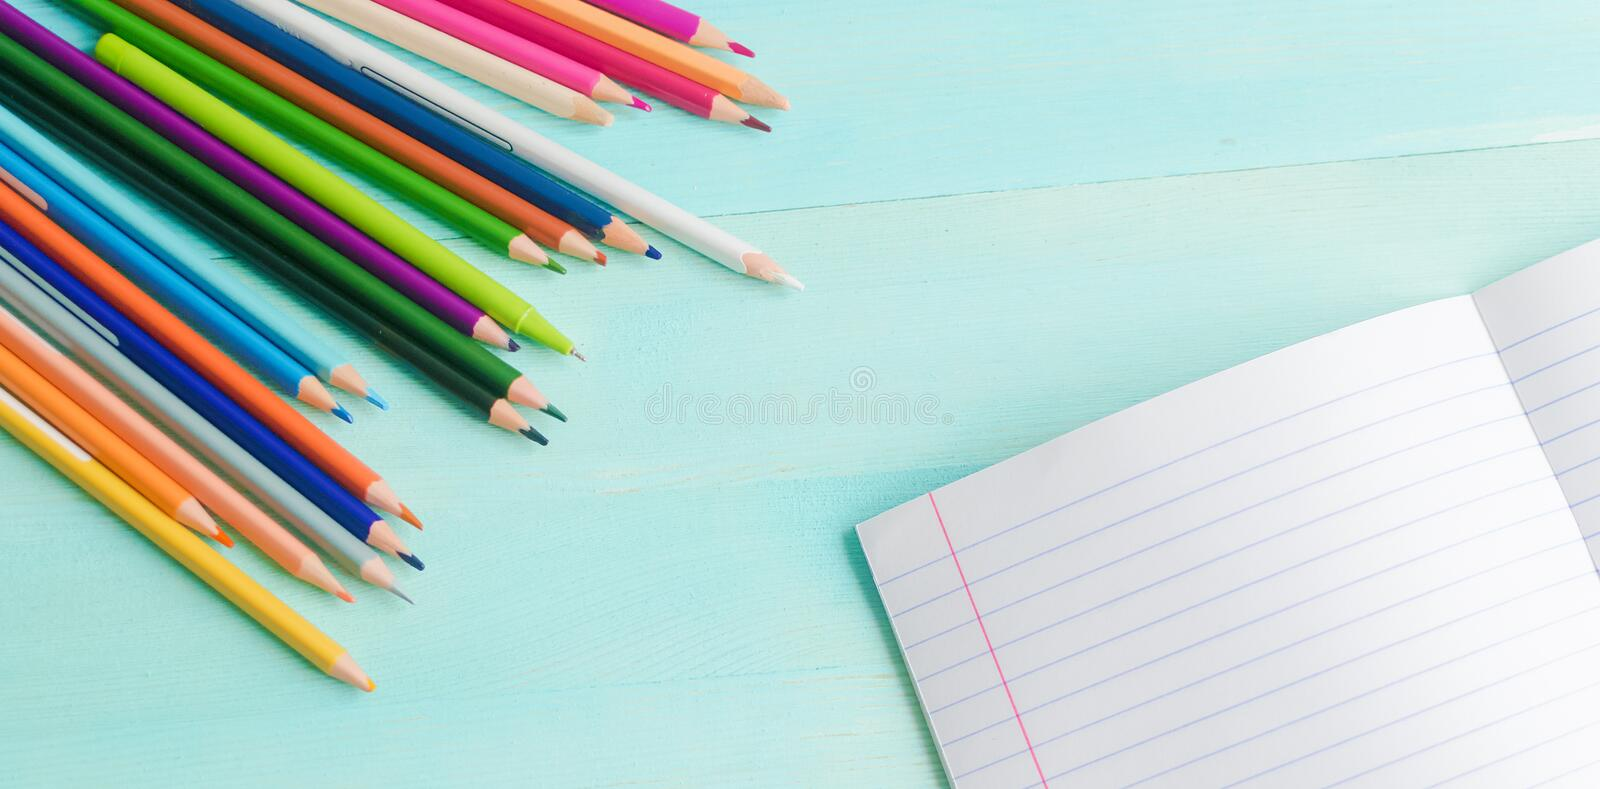 Concept back to school.School accessories, colored pencils, pen with empty notebook on blue wooden background stock photo